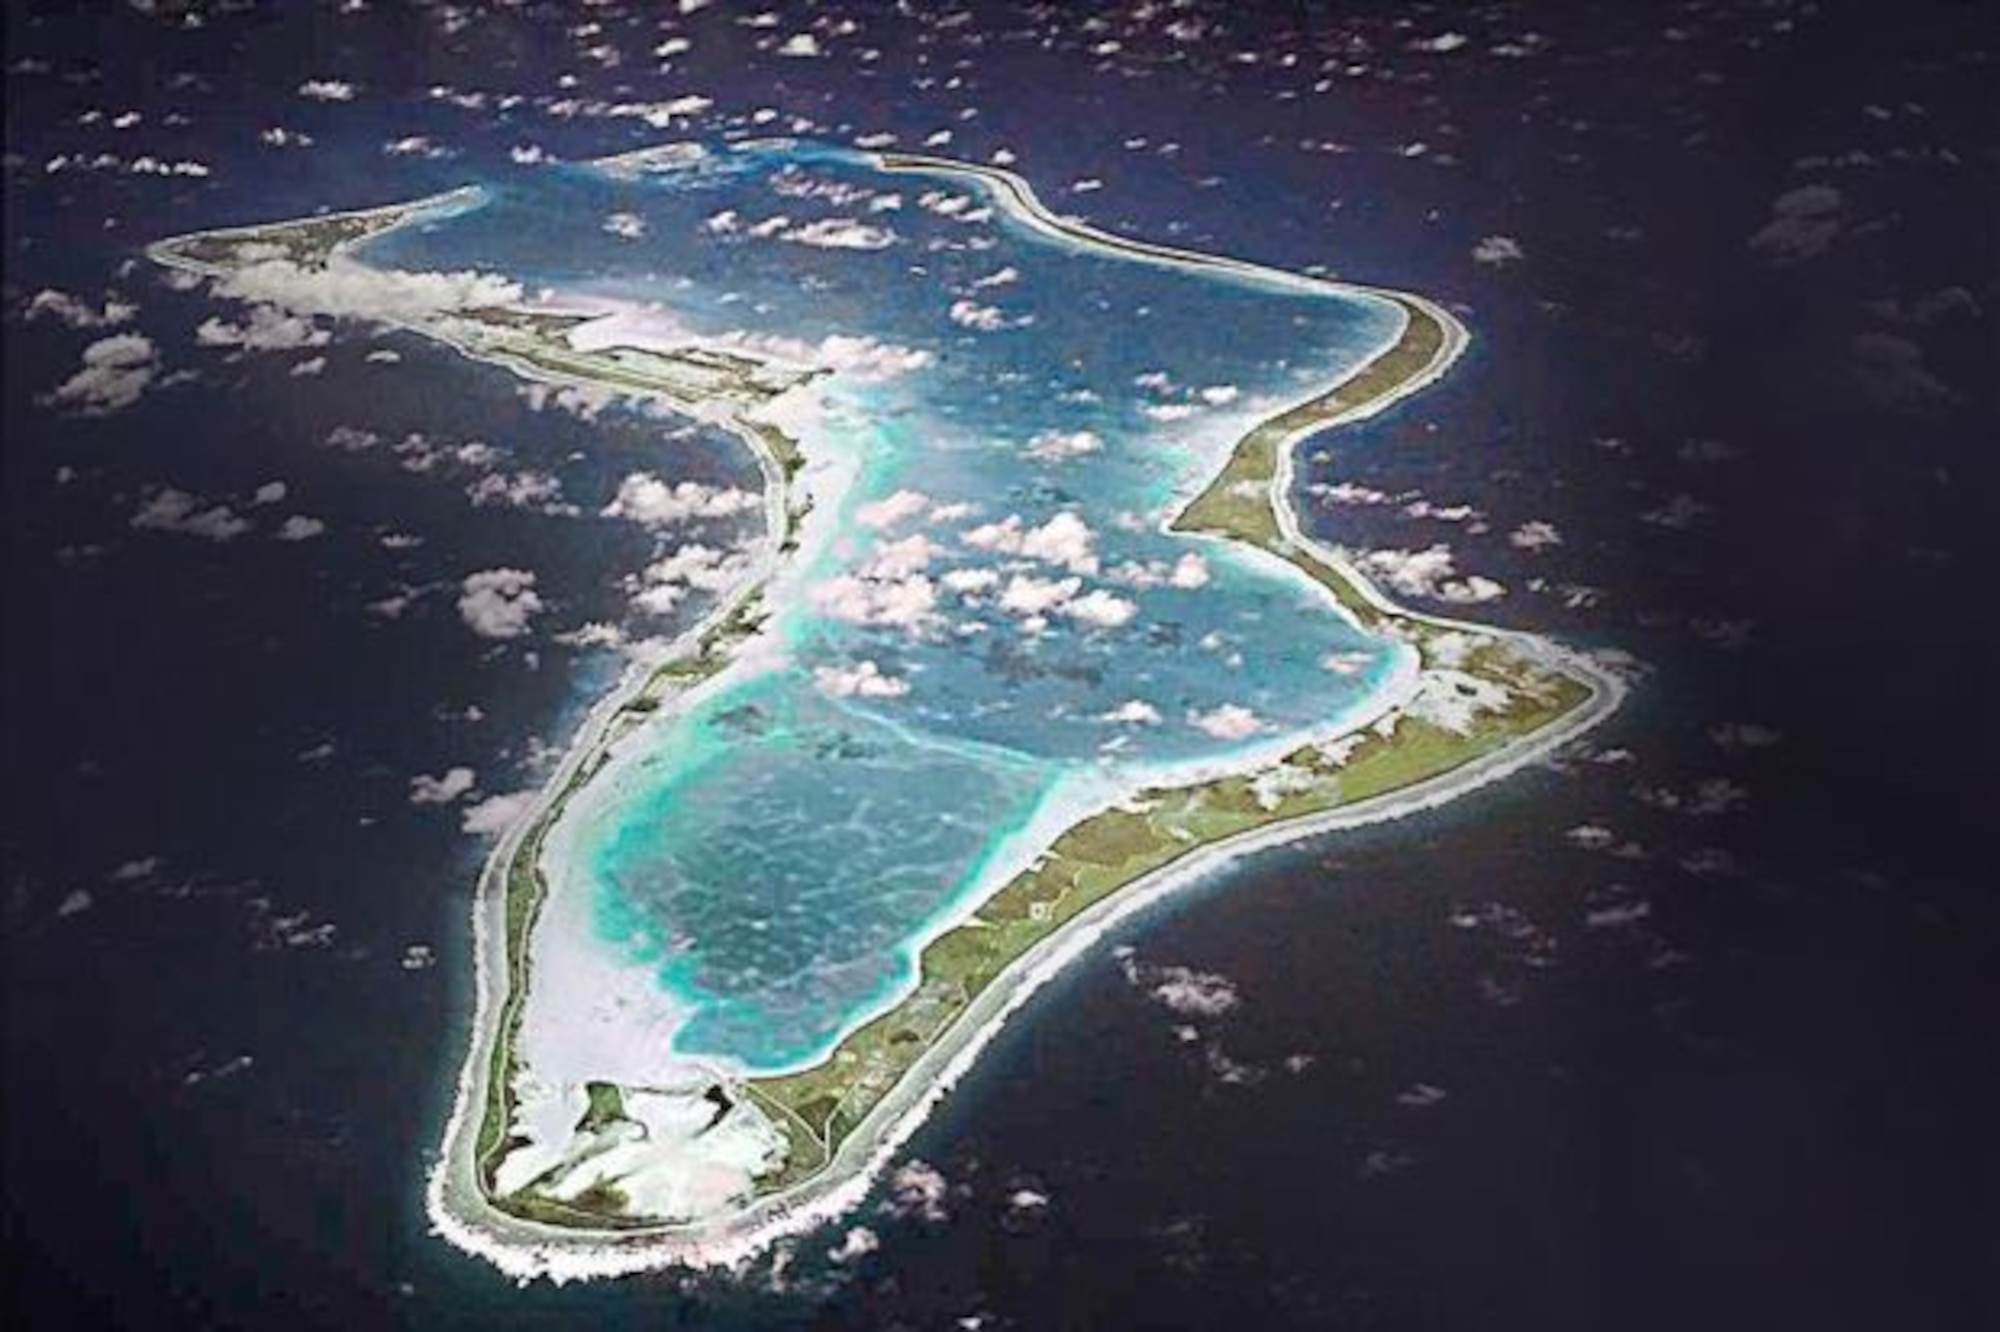 Diego Garcia is one of the largest of 60 small islands making up the Chagoa Archipelago. Airmen from U.S. Air Force Det. 1, 36th Mission Support Group, have the important mission of maintaining a forward operating location there, approximately 3,000 miles west of Guam (Courtesy photo).